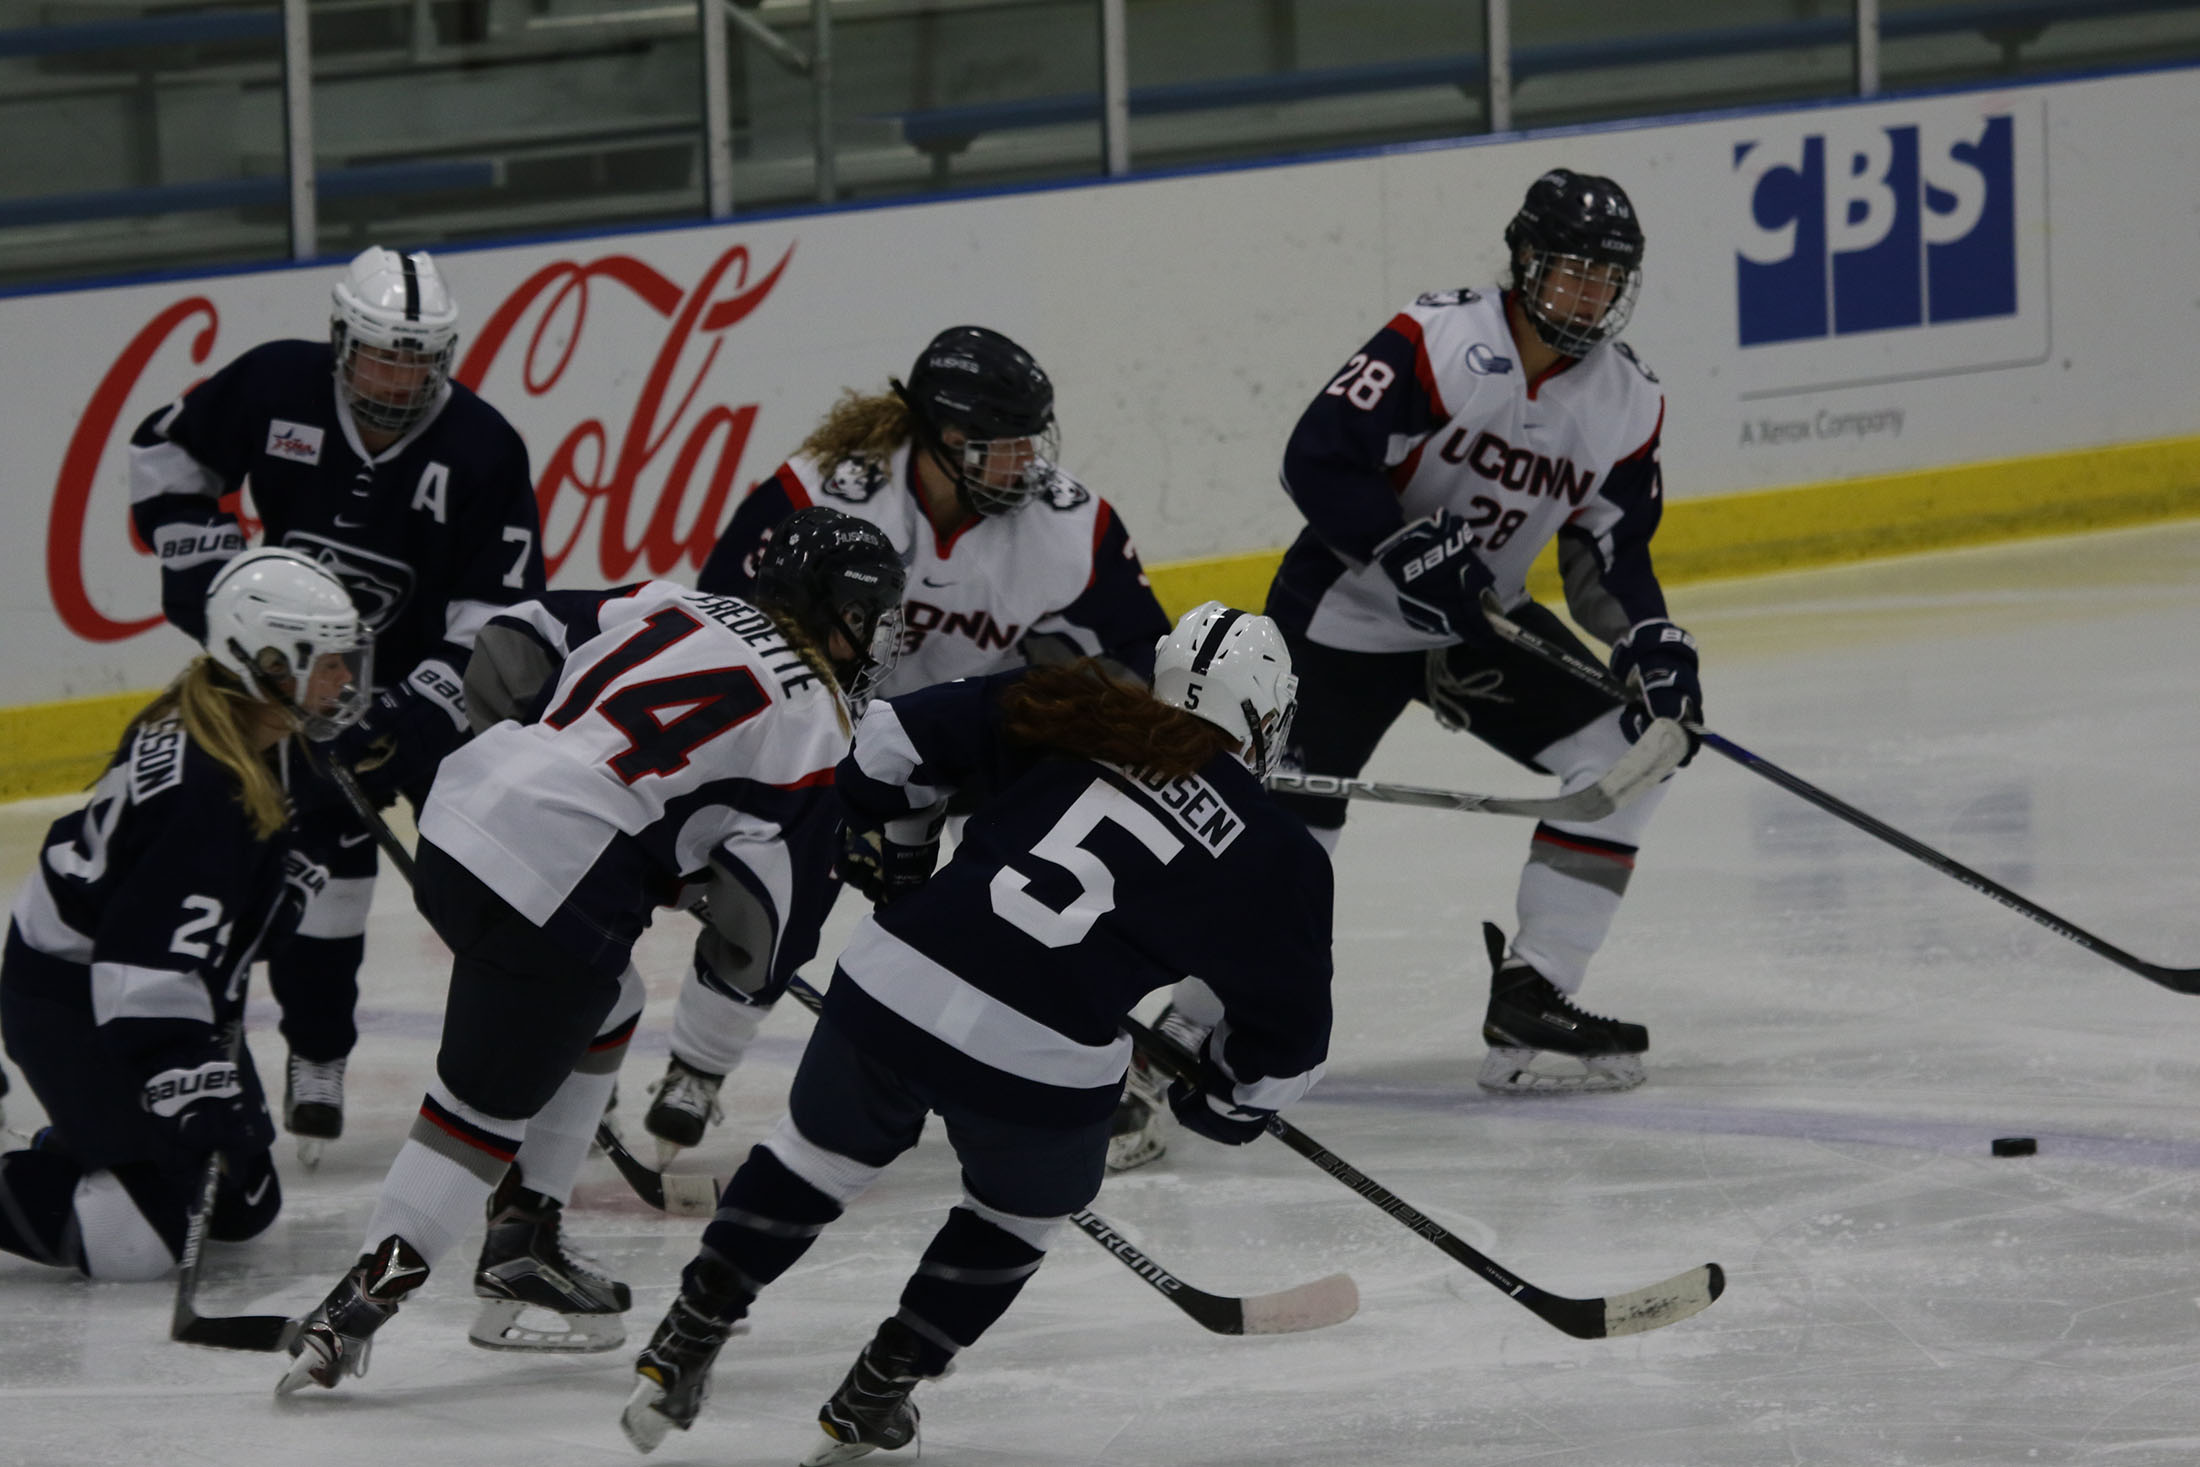 The ladies pulled out a 2-1 victory at Walter Brown Arena on Saturday, Dec. 3 against Boston University after their 4-1 loss at Freitas on Friday, Dec. 2.  Saturday's win was the first victory the team has had over BU since the 2009-2010 season.  (Ruohan Li/The Daily Campus)